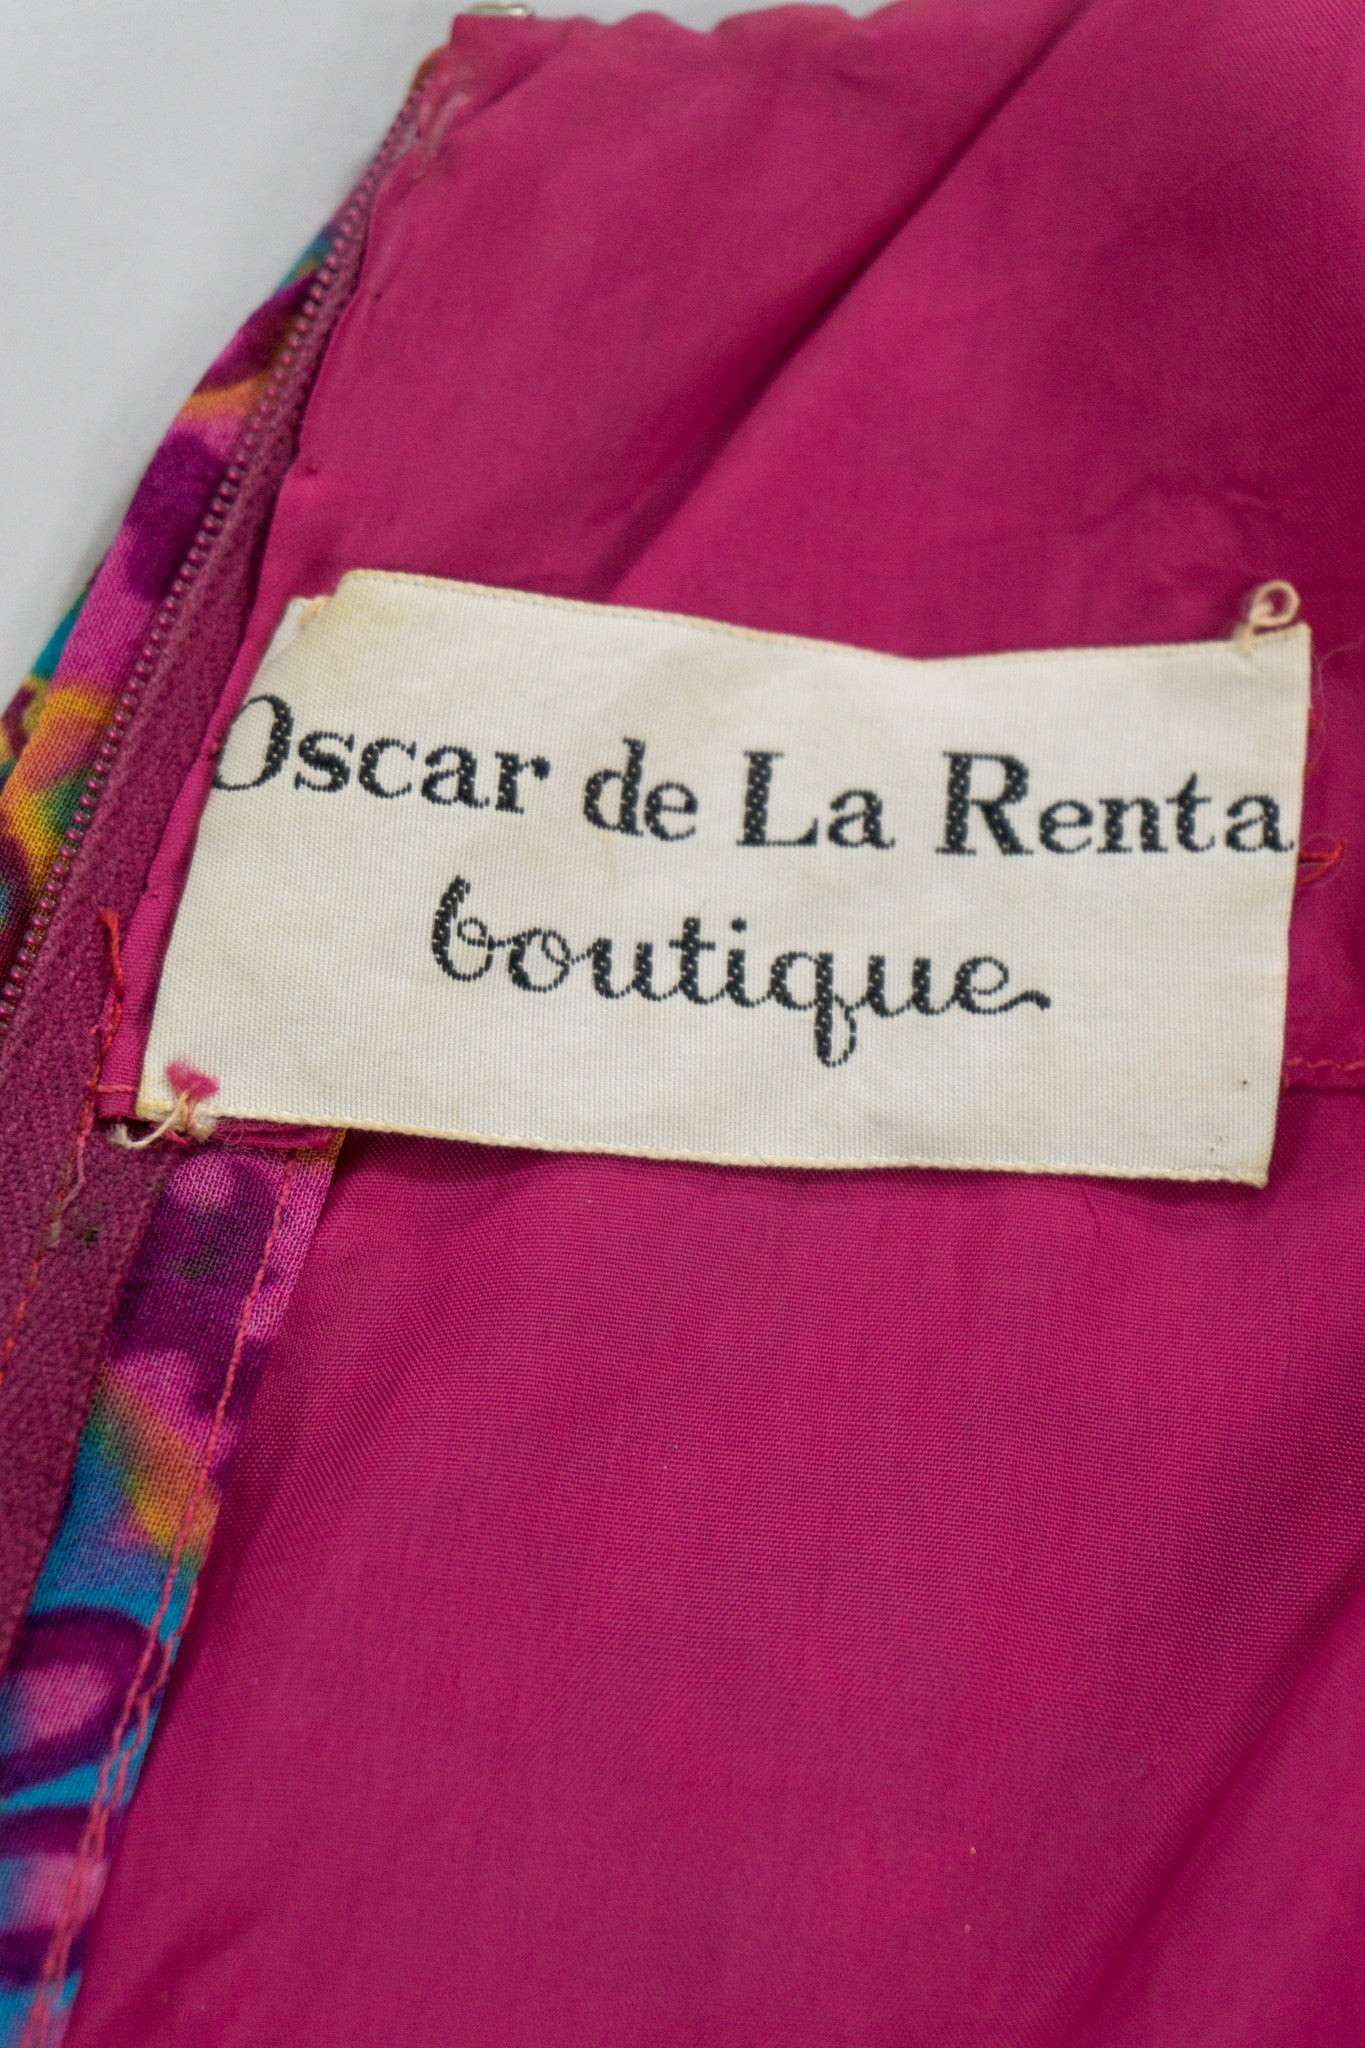 Oscar de la Renta Boutique Label